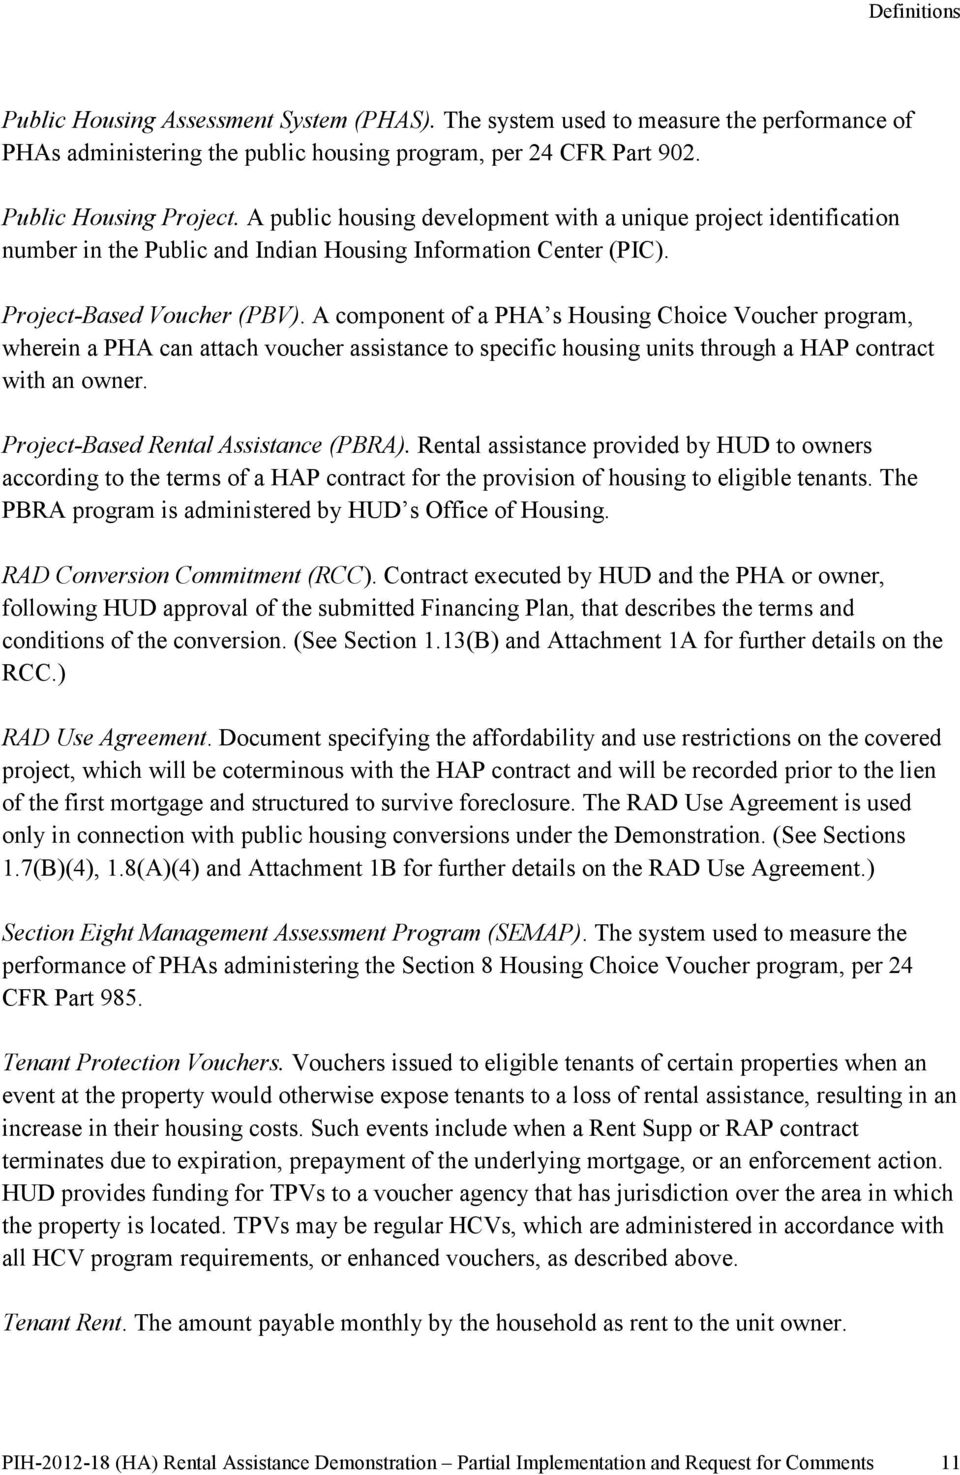 A component of a PHA s Housing Choice Voucher program, wherein a PHA can attach voucher assistance to specific housing units through a HAP contract with an owner.